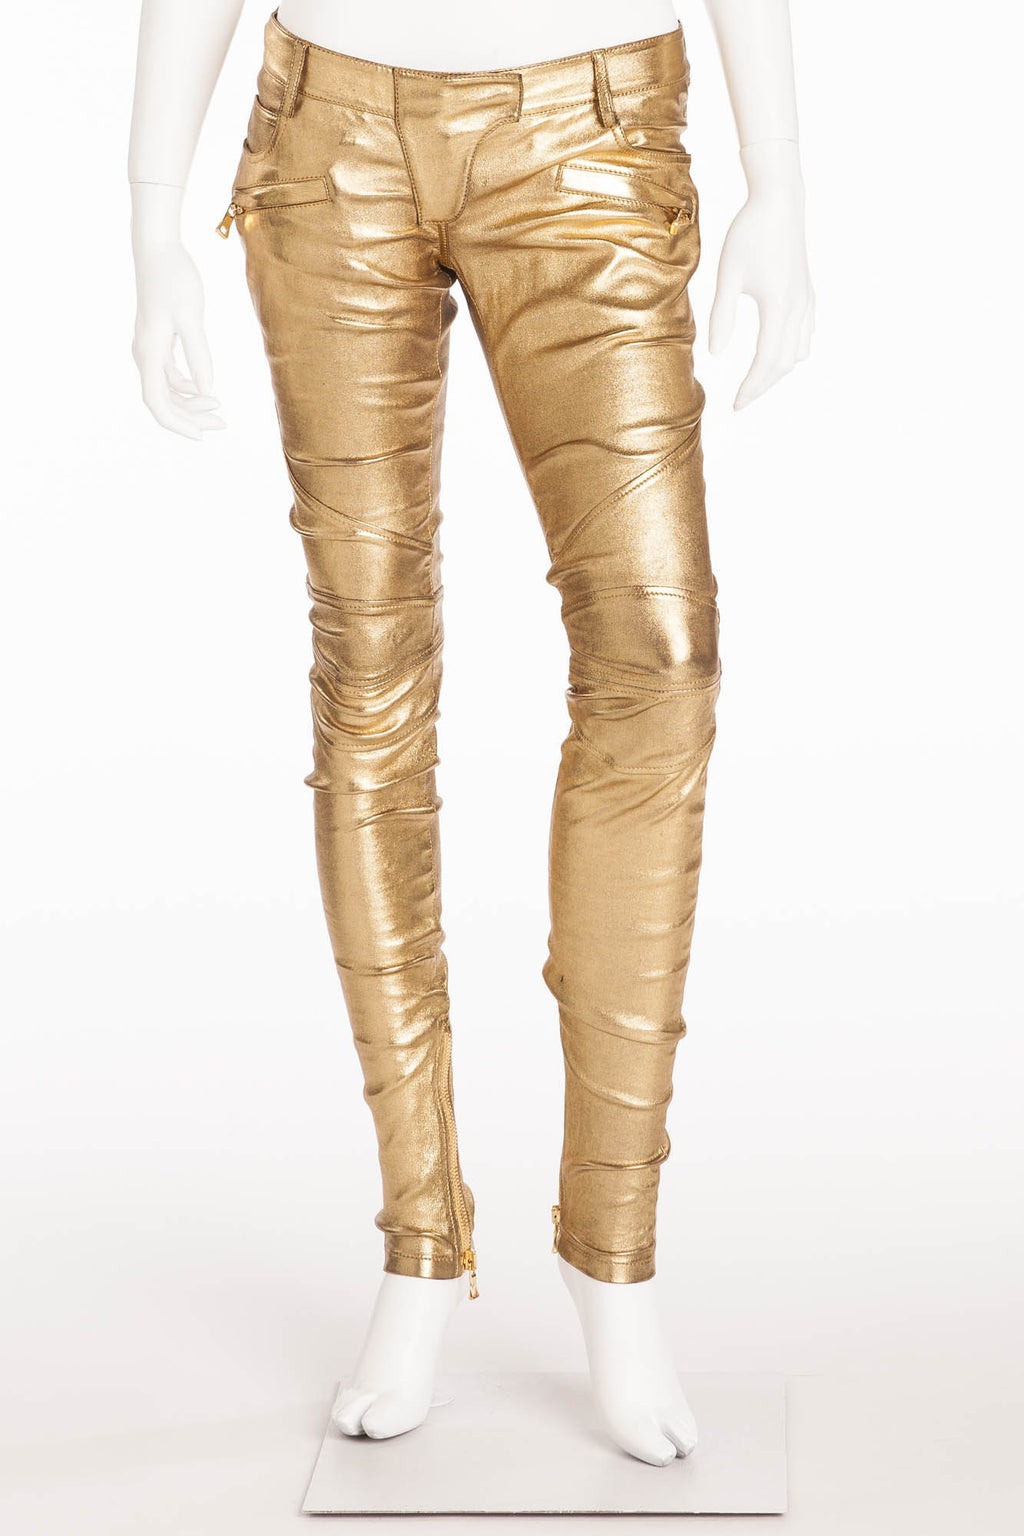 Balmain - New with Tags Gold Leather Skinny Jeans - FR 38